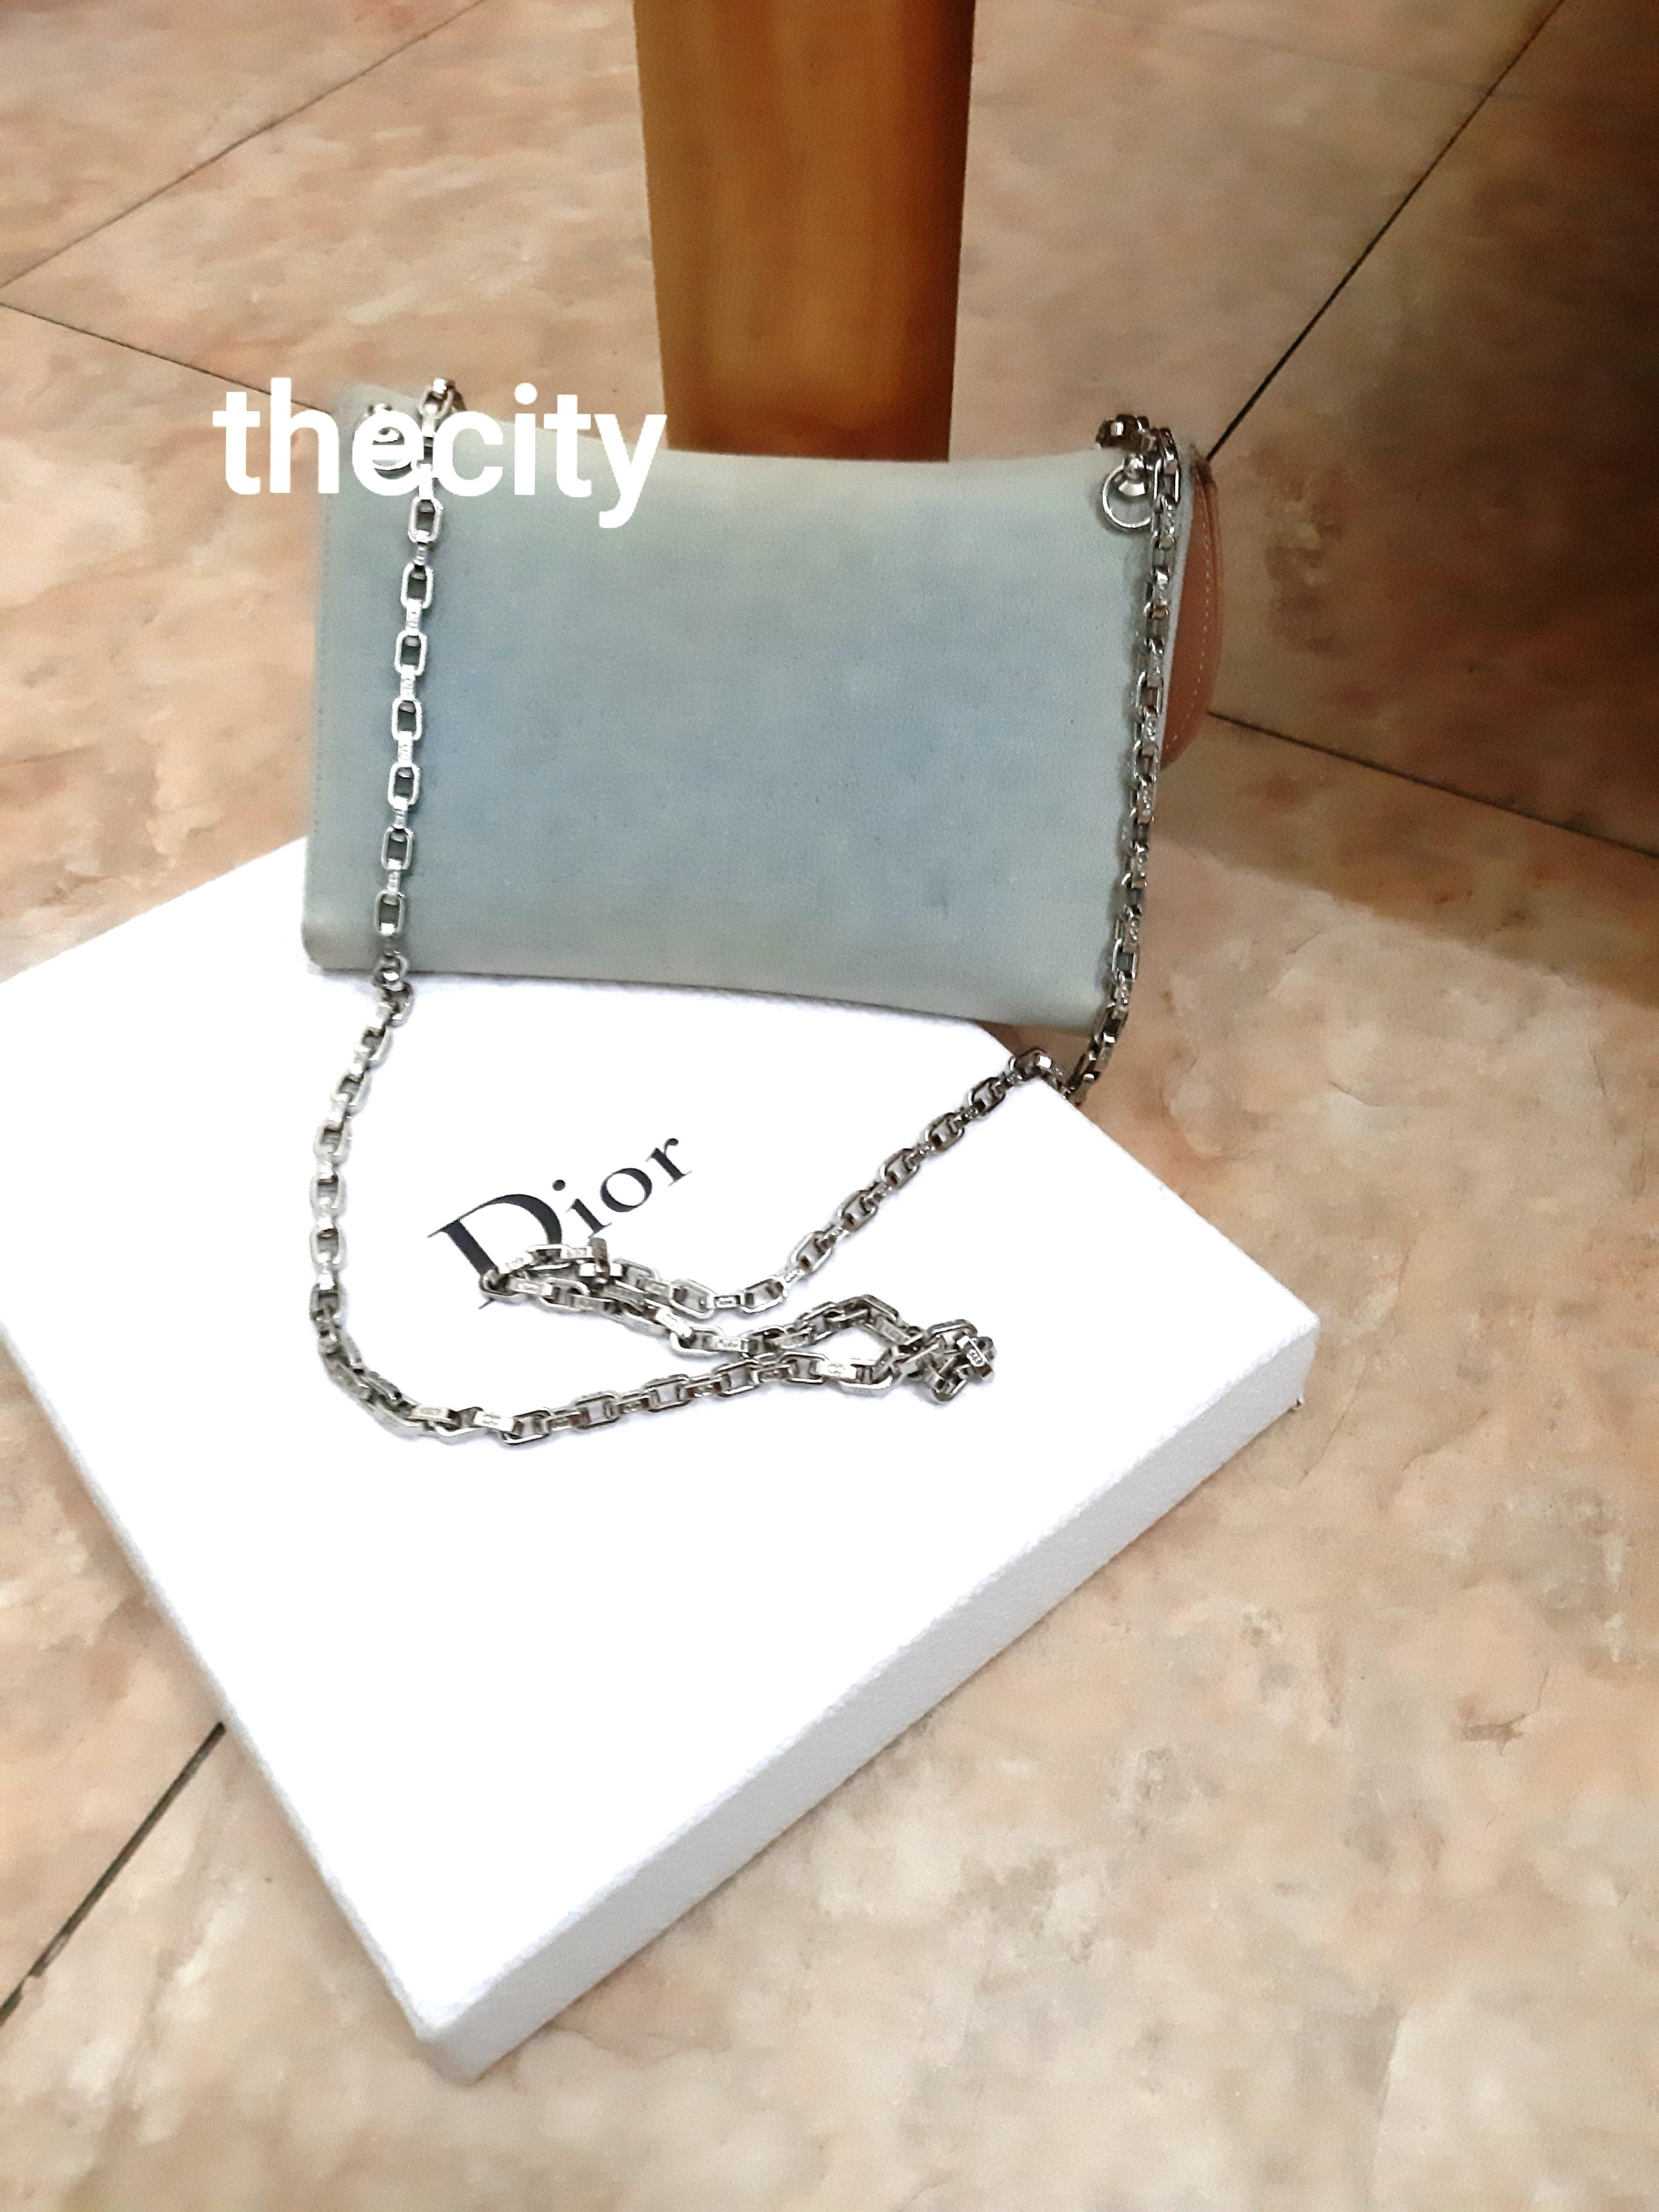 AUTHENTIC DIOR SADDLE LARGE ORGANIZER POUCH / WALLET - BLUE DENIM - WITH EXTRA ADD HOOKS AND DIOR CHAIN STRAP FOR CROSSBODY SLING